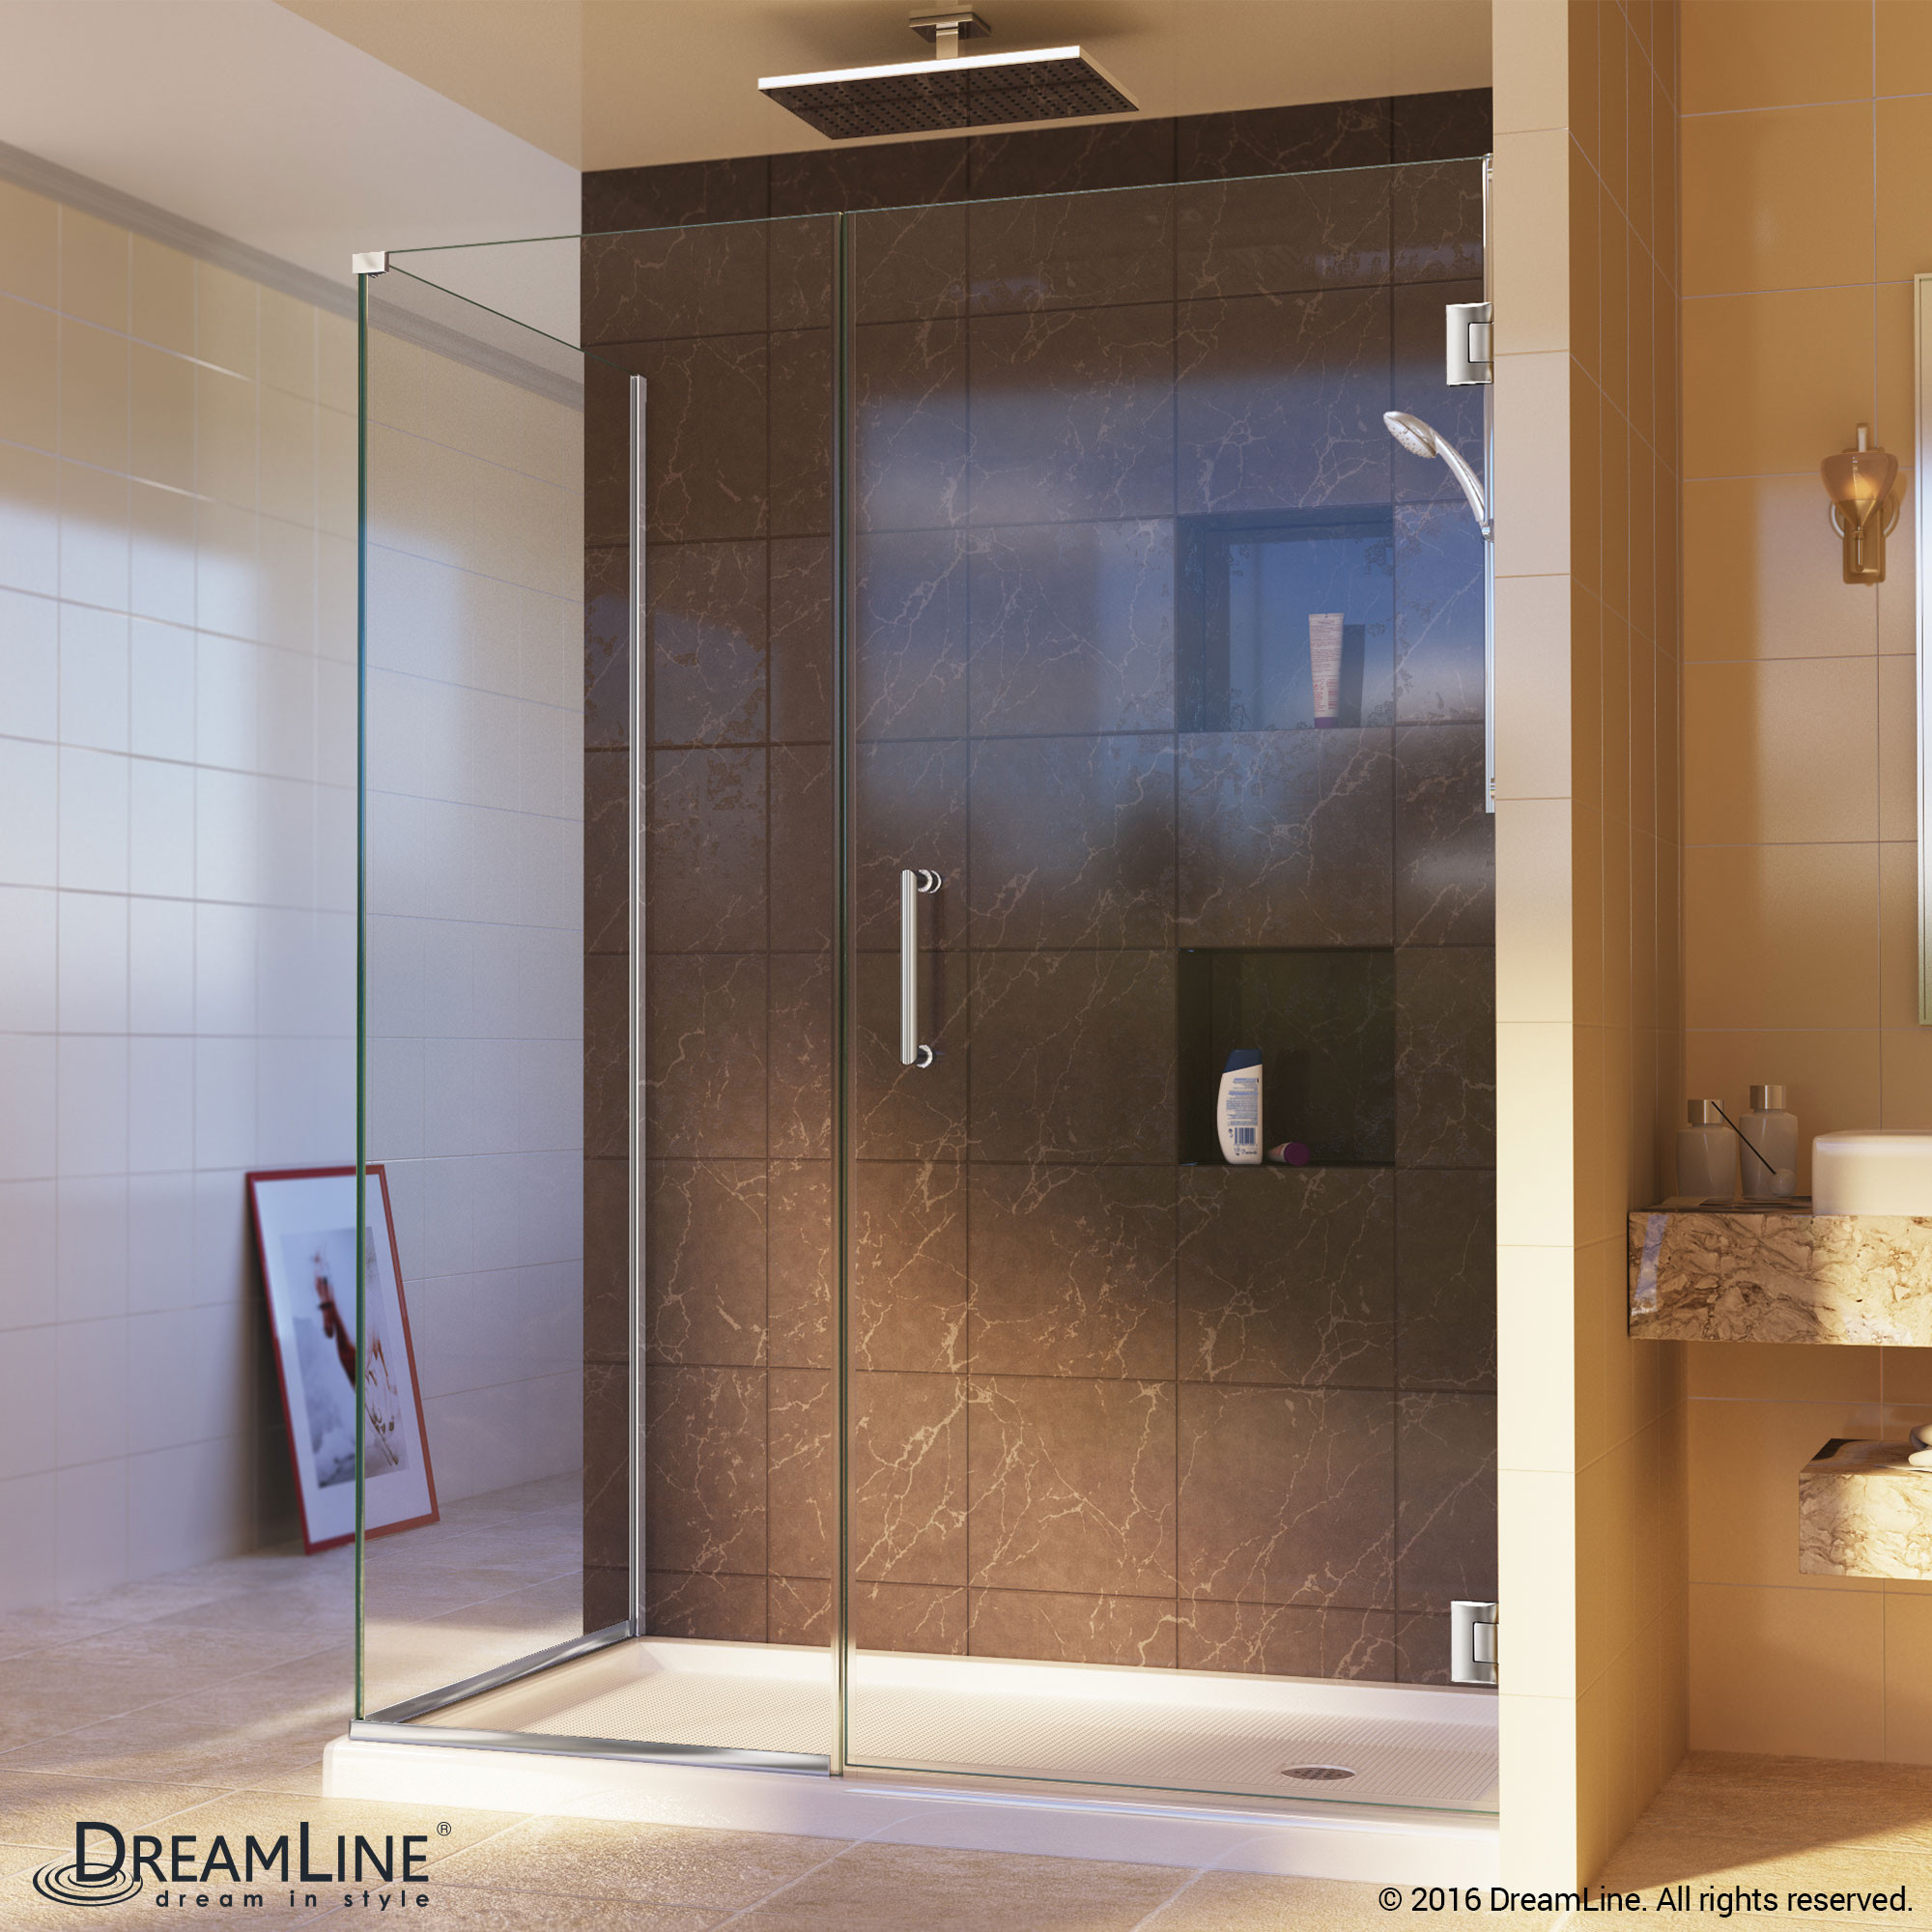 DreamLine SHEN-24505300-01 Unidoor Plus Hinged Shower Enclosure In Chrome Finish Hardware